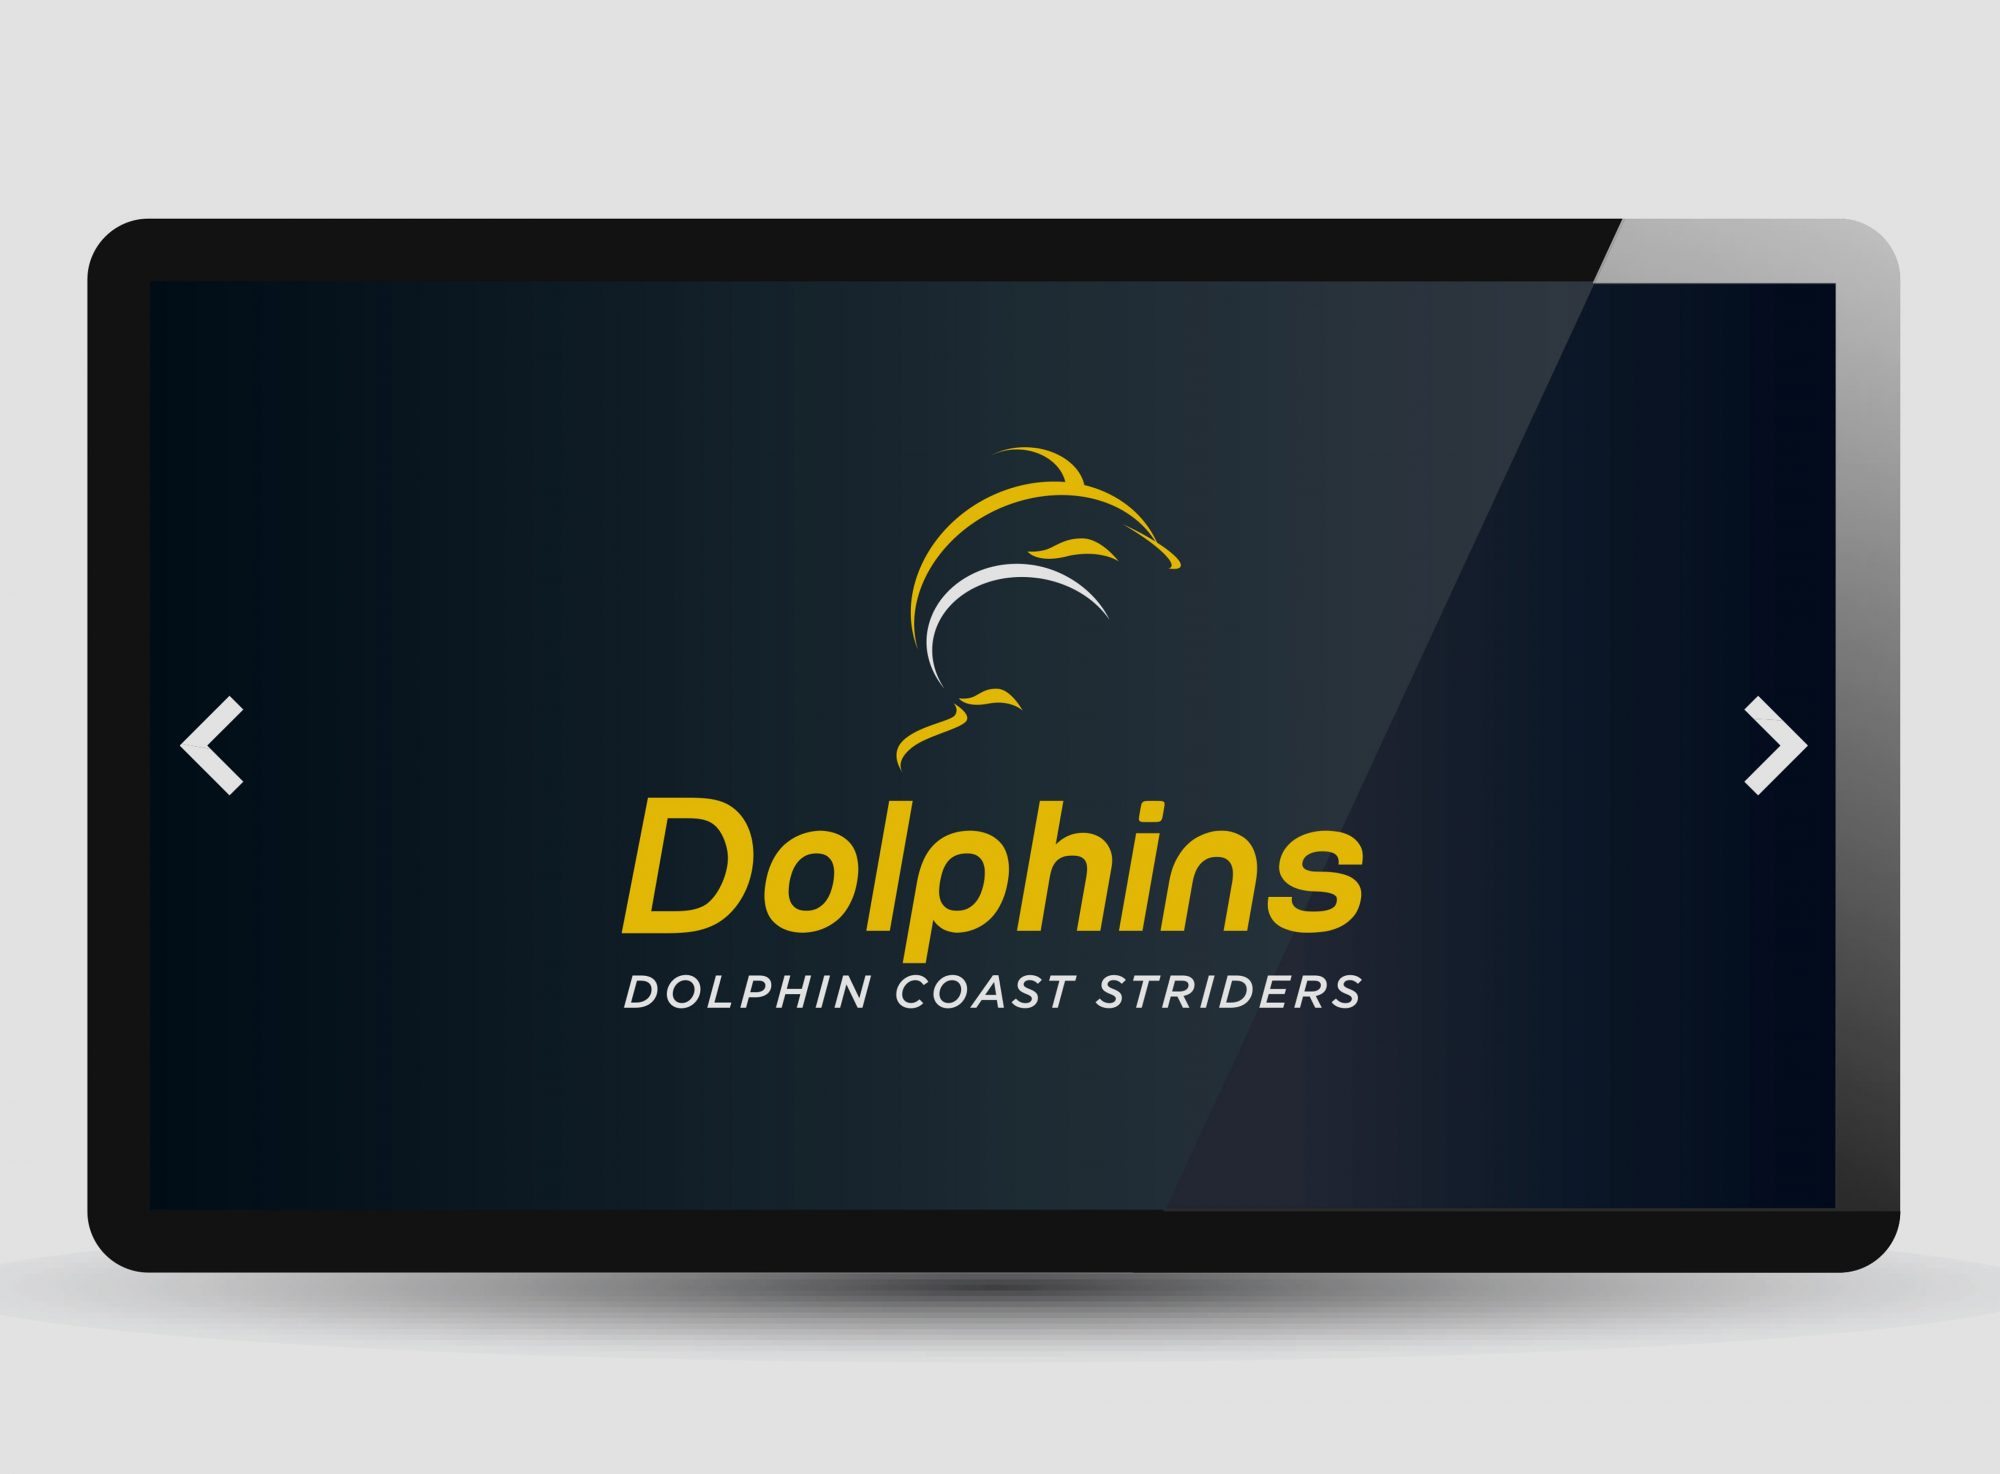 Dolphin Coast Striders Ipad